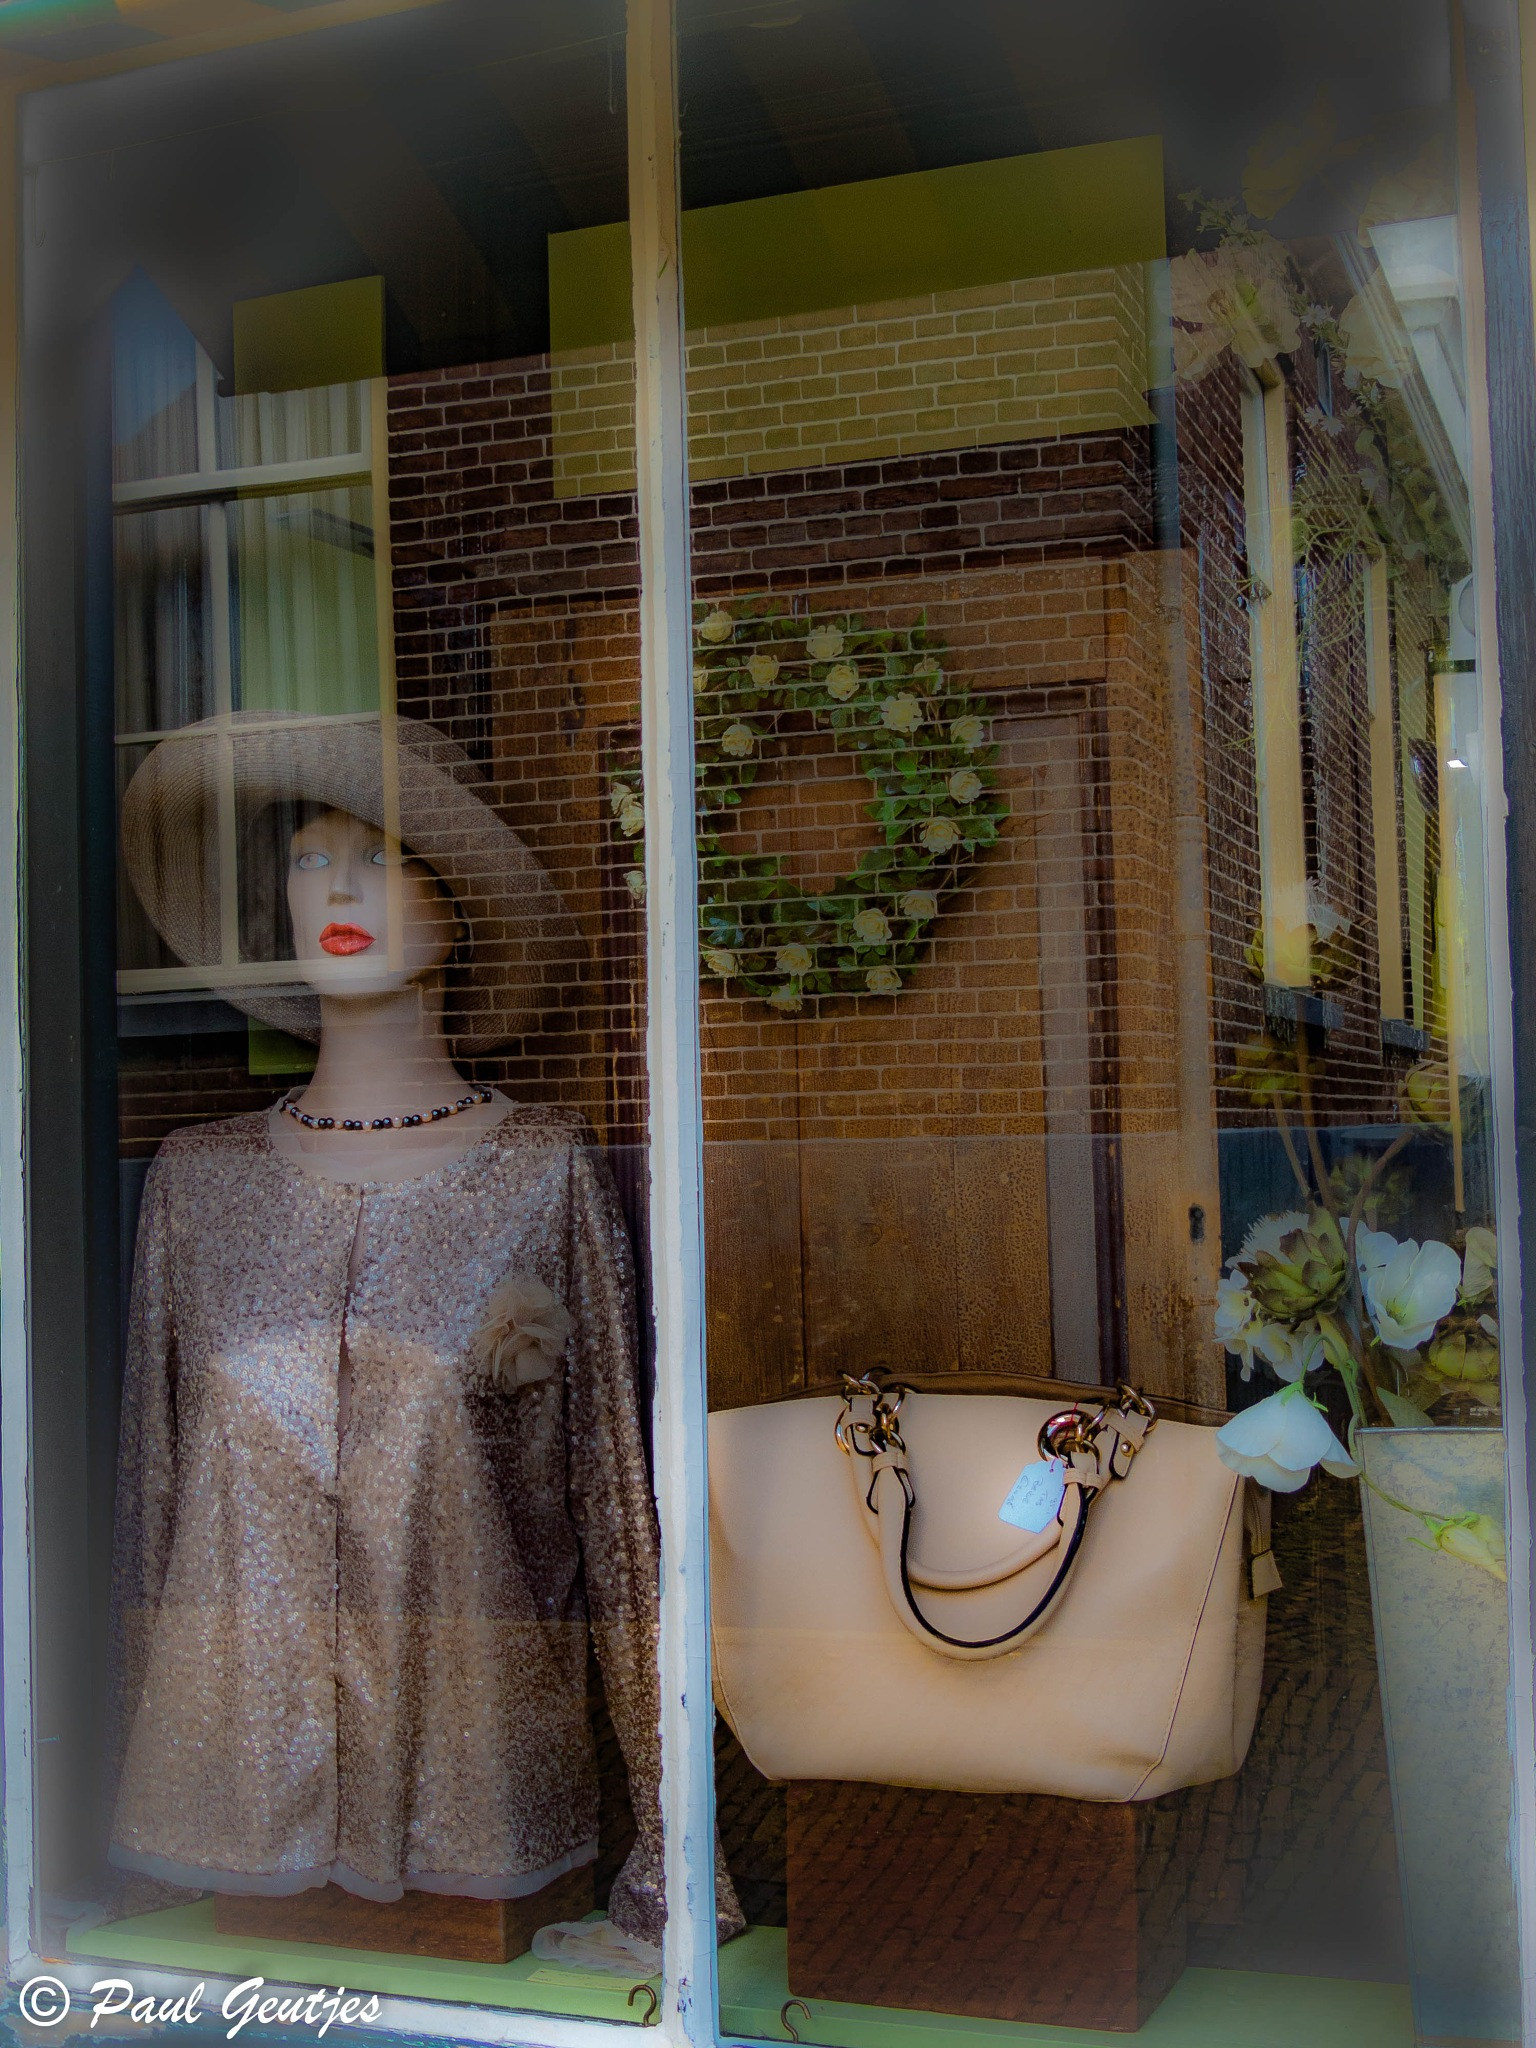 Shop Window Reflection by Paul Geutjes